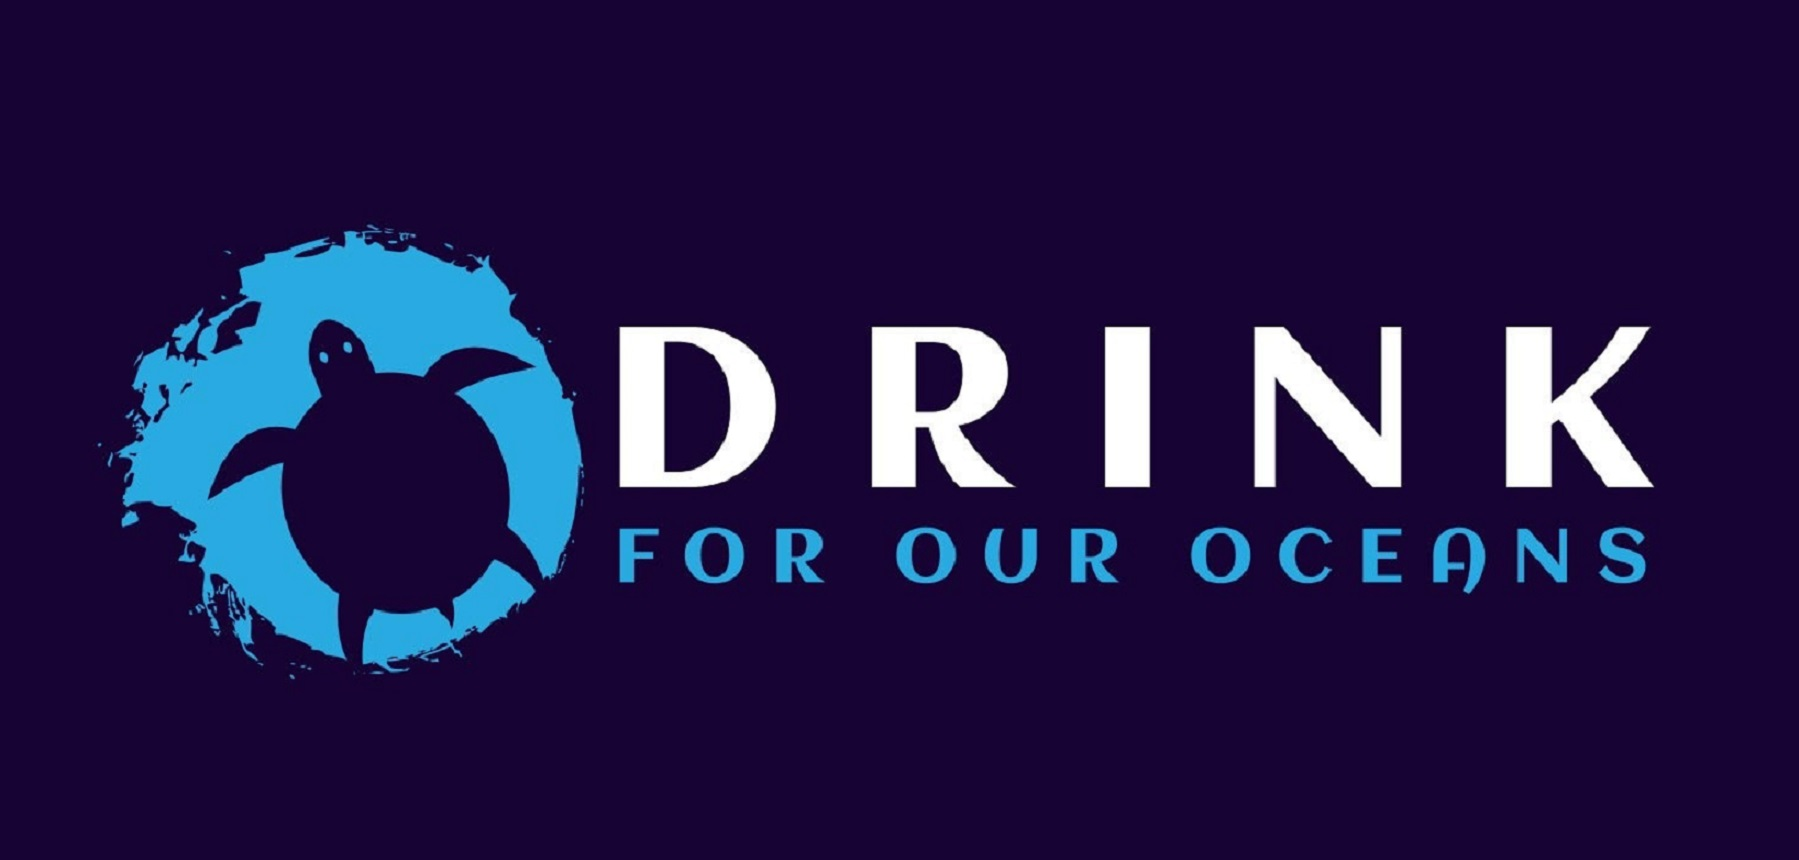 DrinkForTheOcean